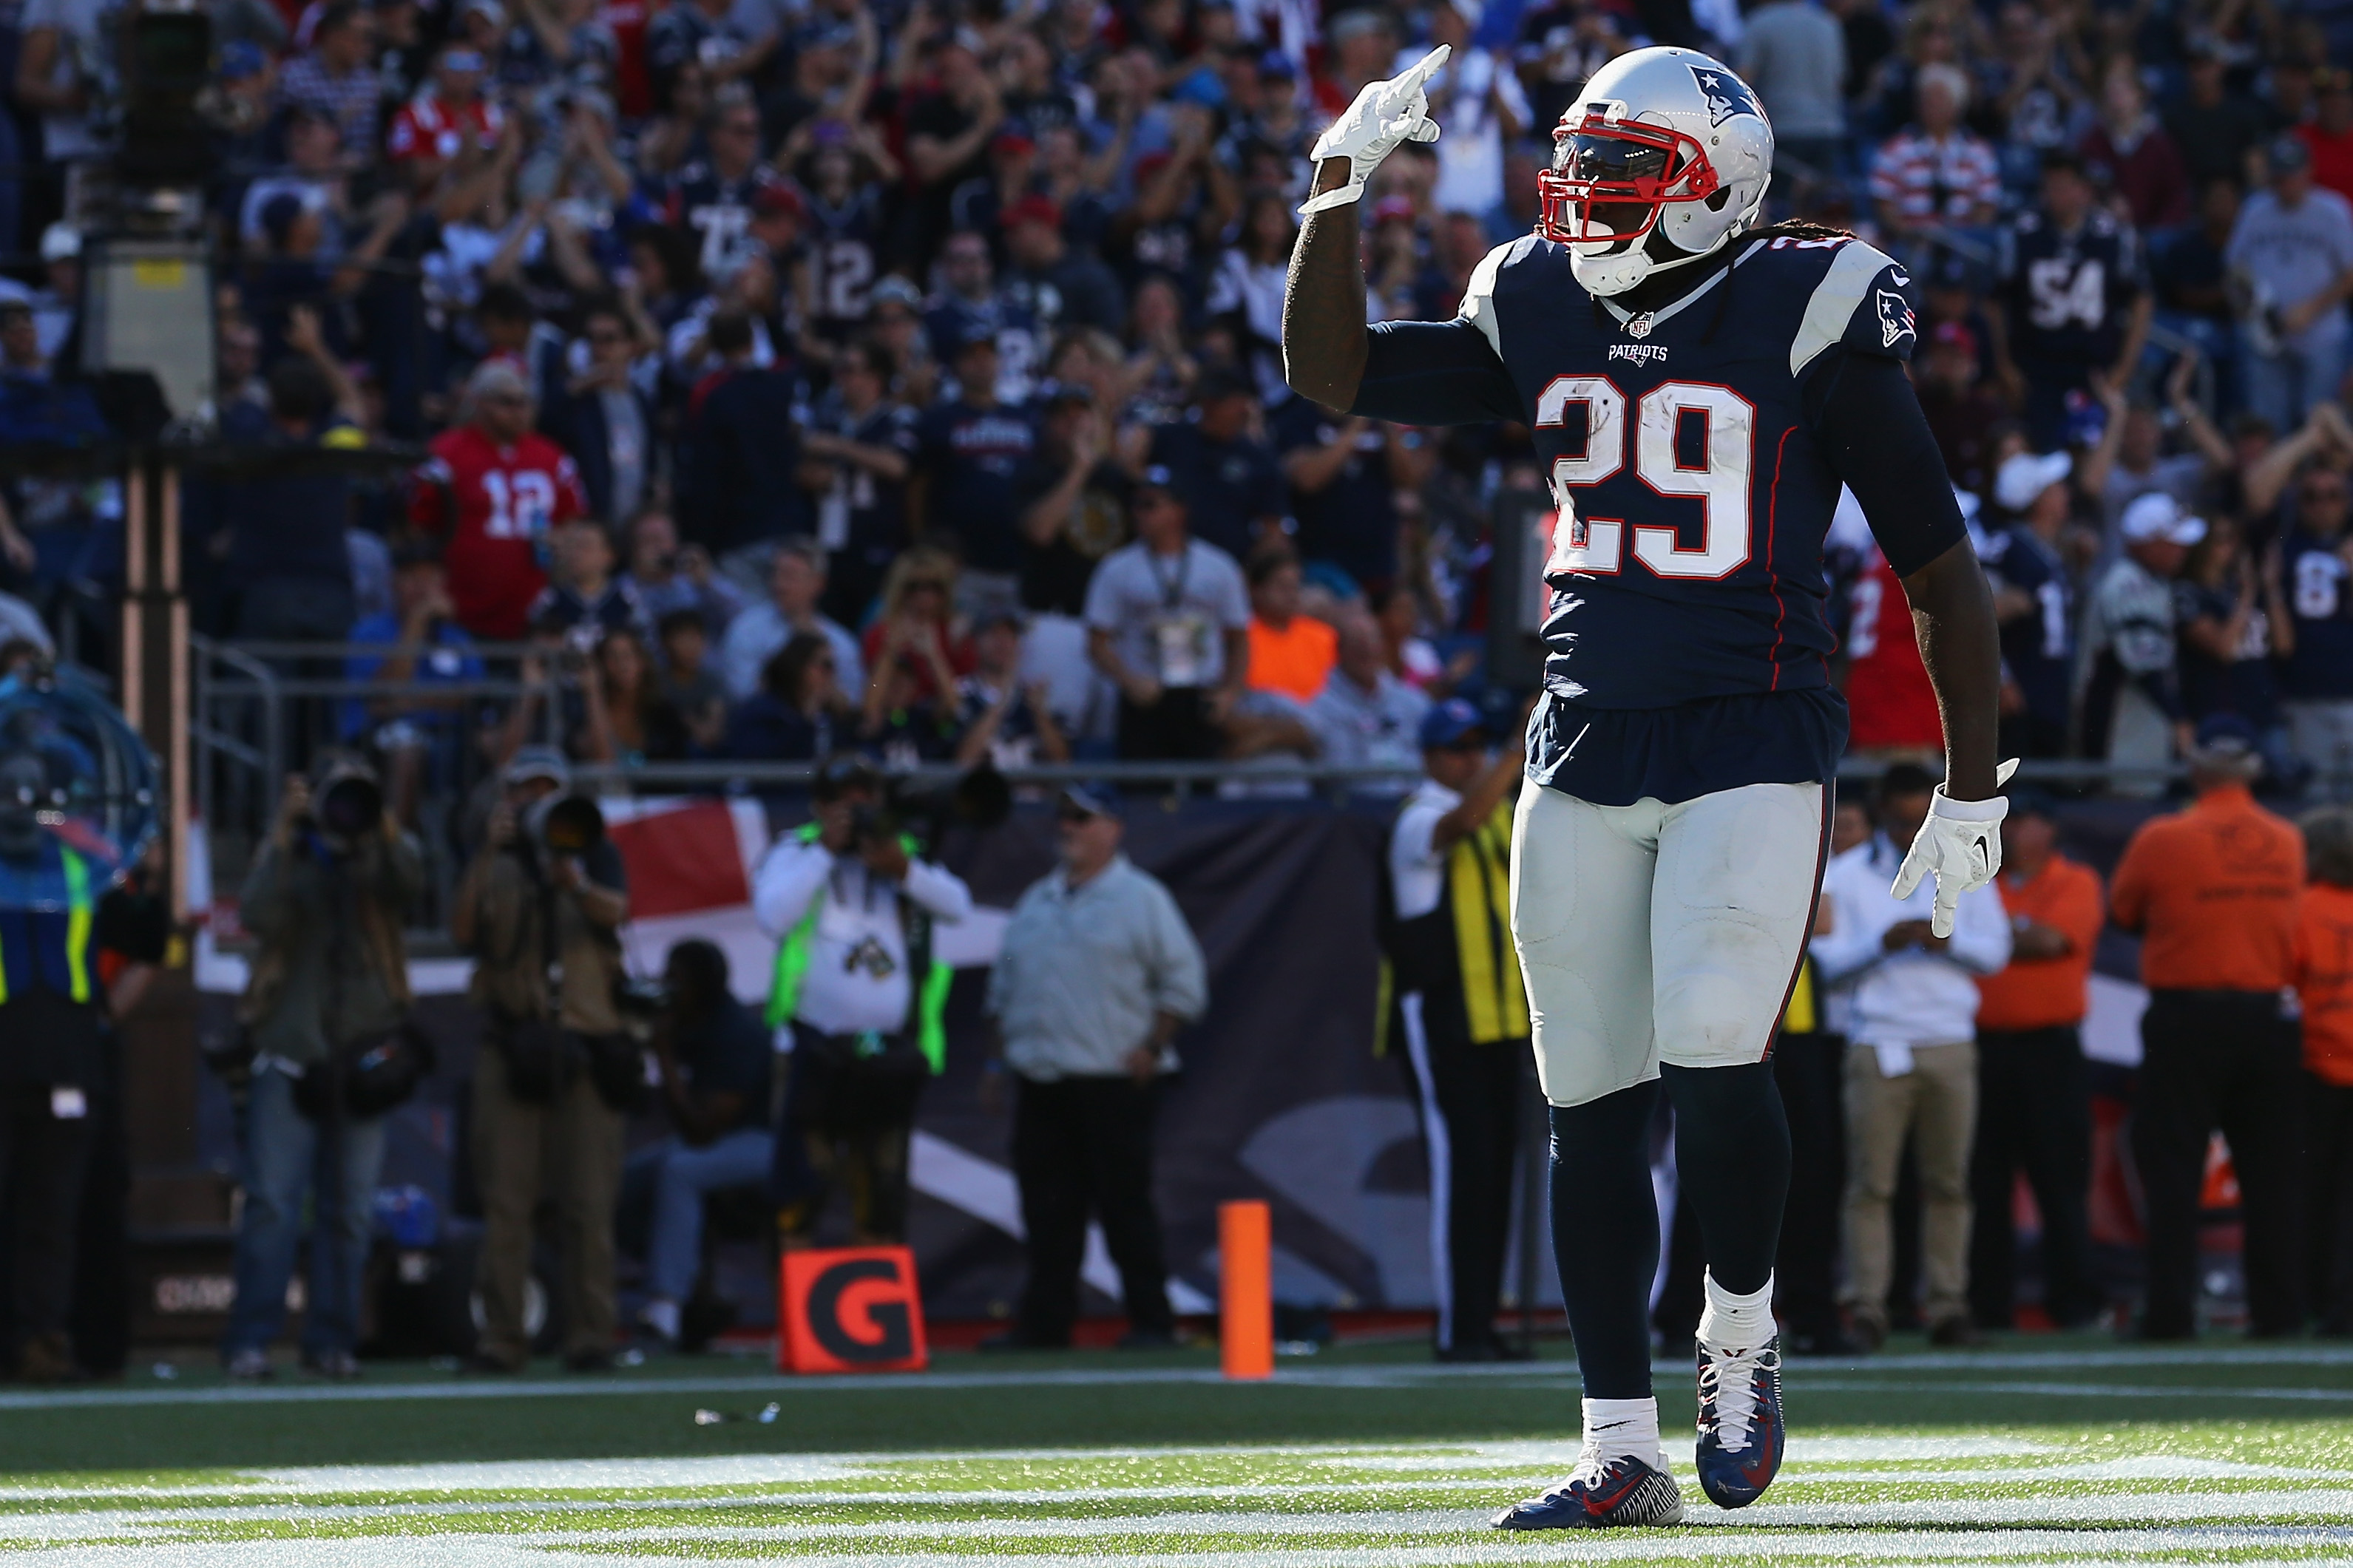 LeGarrette Blount has killed the Colts in previous meetings. (Getty)